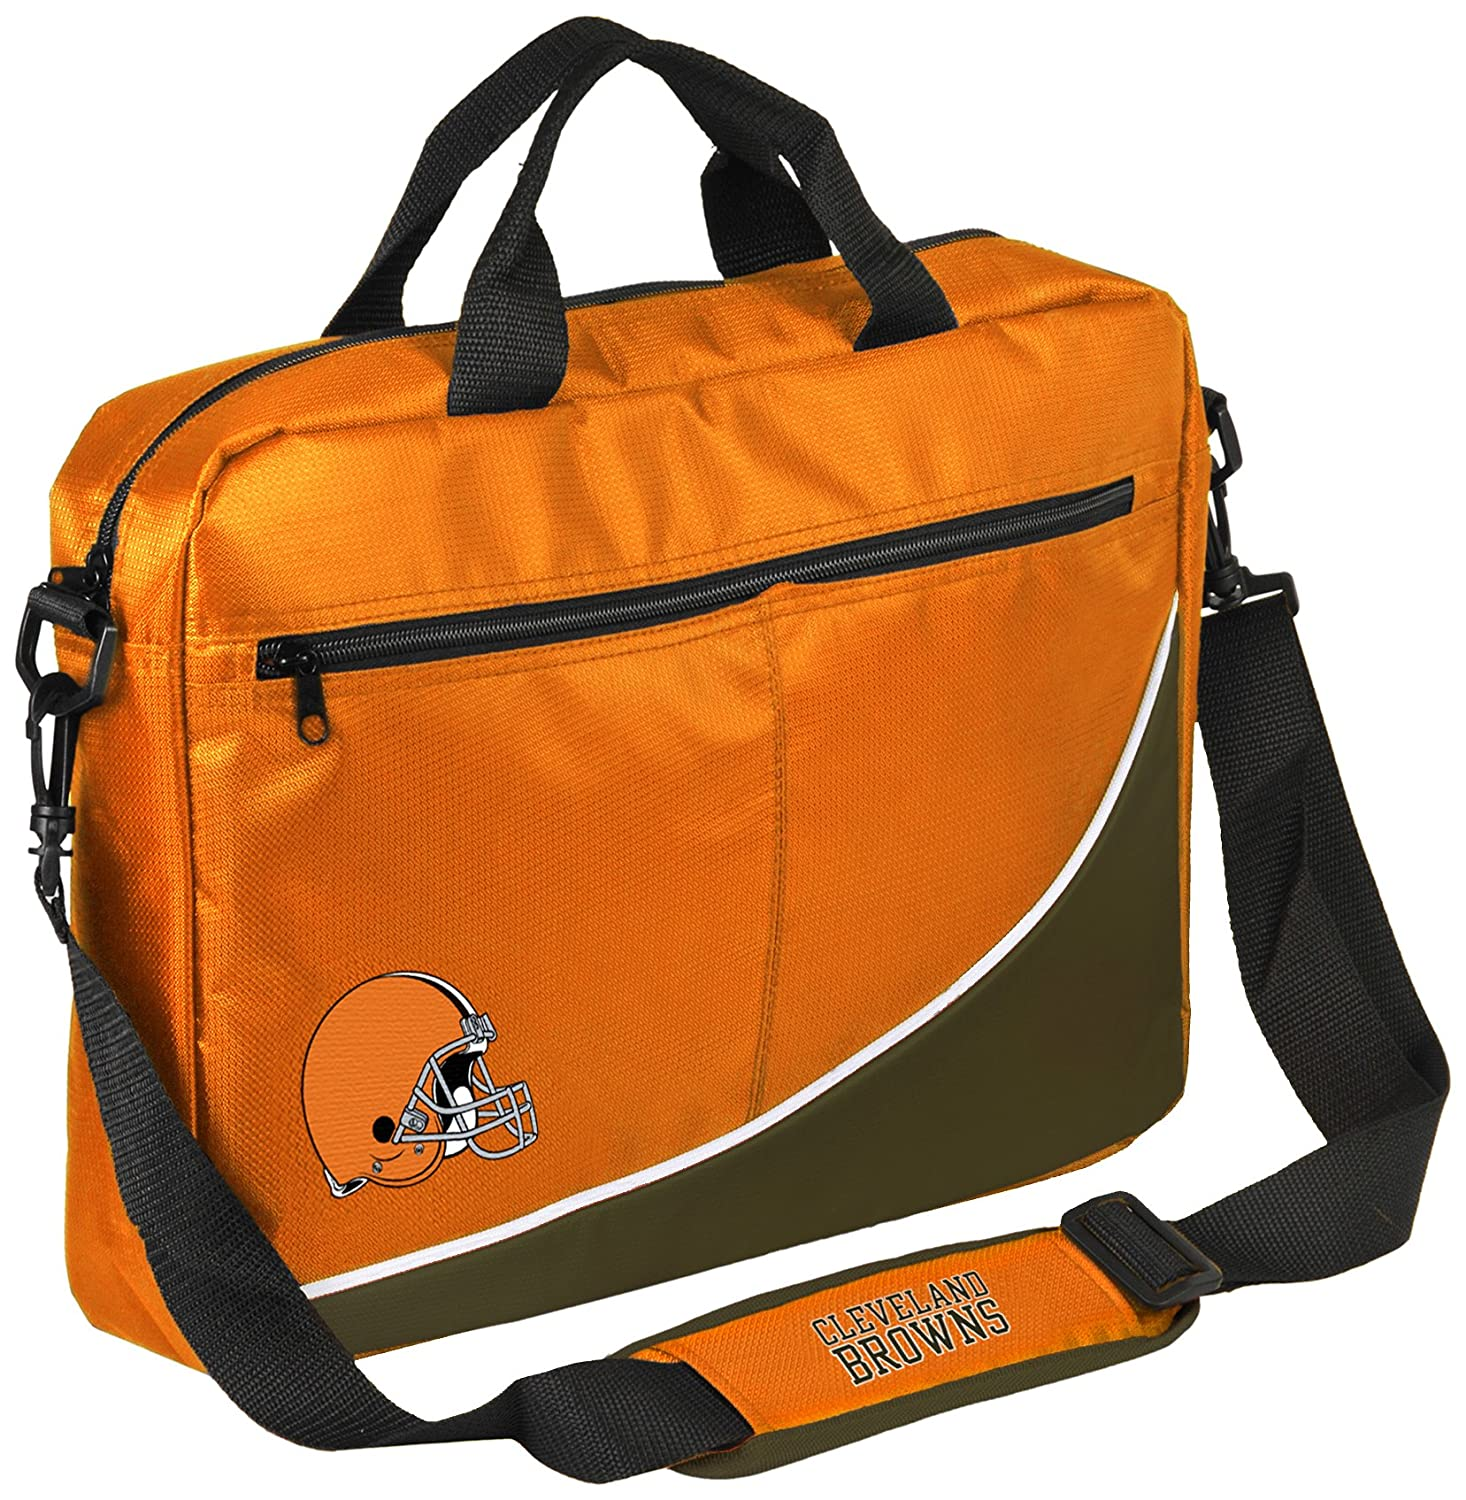 (Cleveland Browns, One unisex Size, (Cleveland Carrying Team Color) - FOCO NFL unisex CMBSLaptop Carrying Case B00GOETGFG, スタイルTY:16d0d698 --- number-directory.top